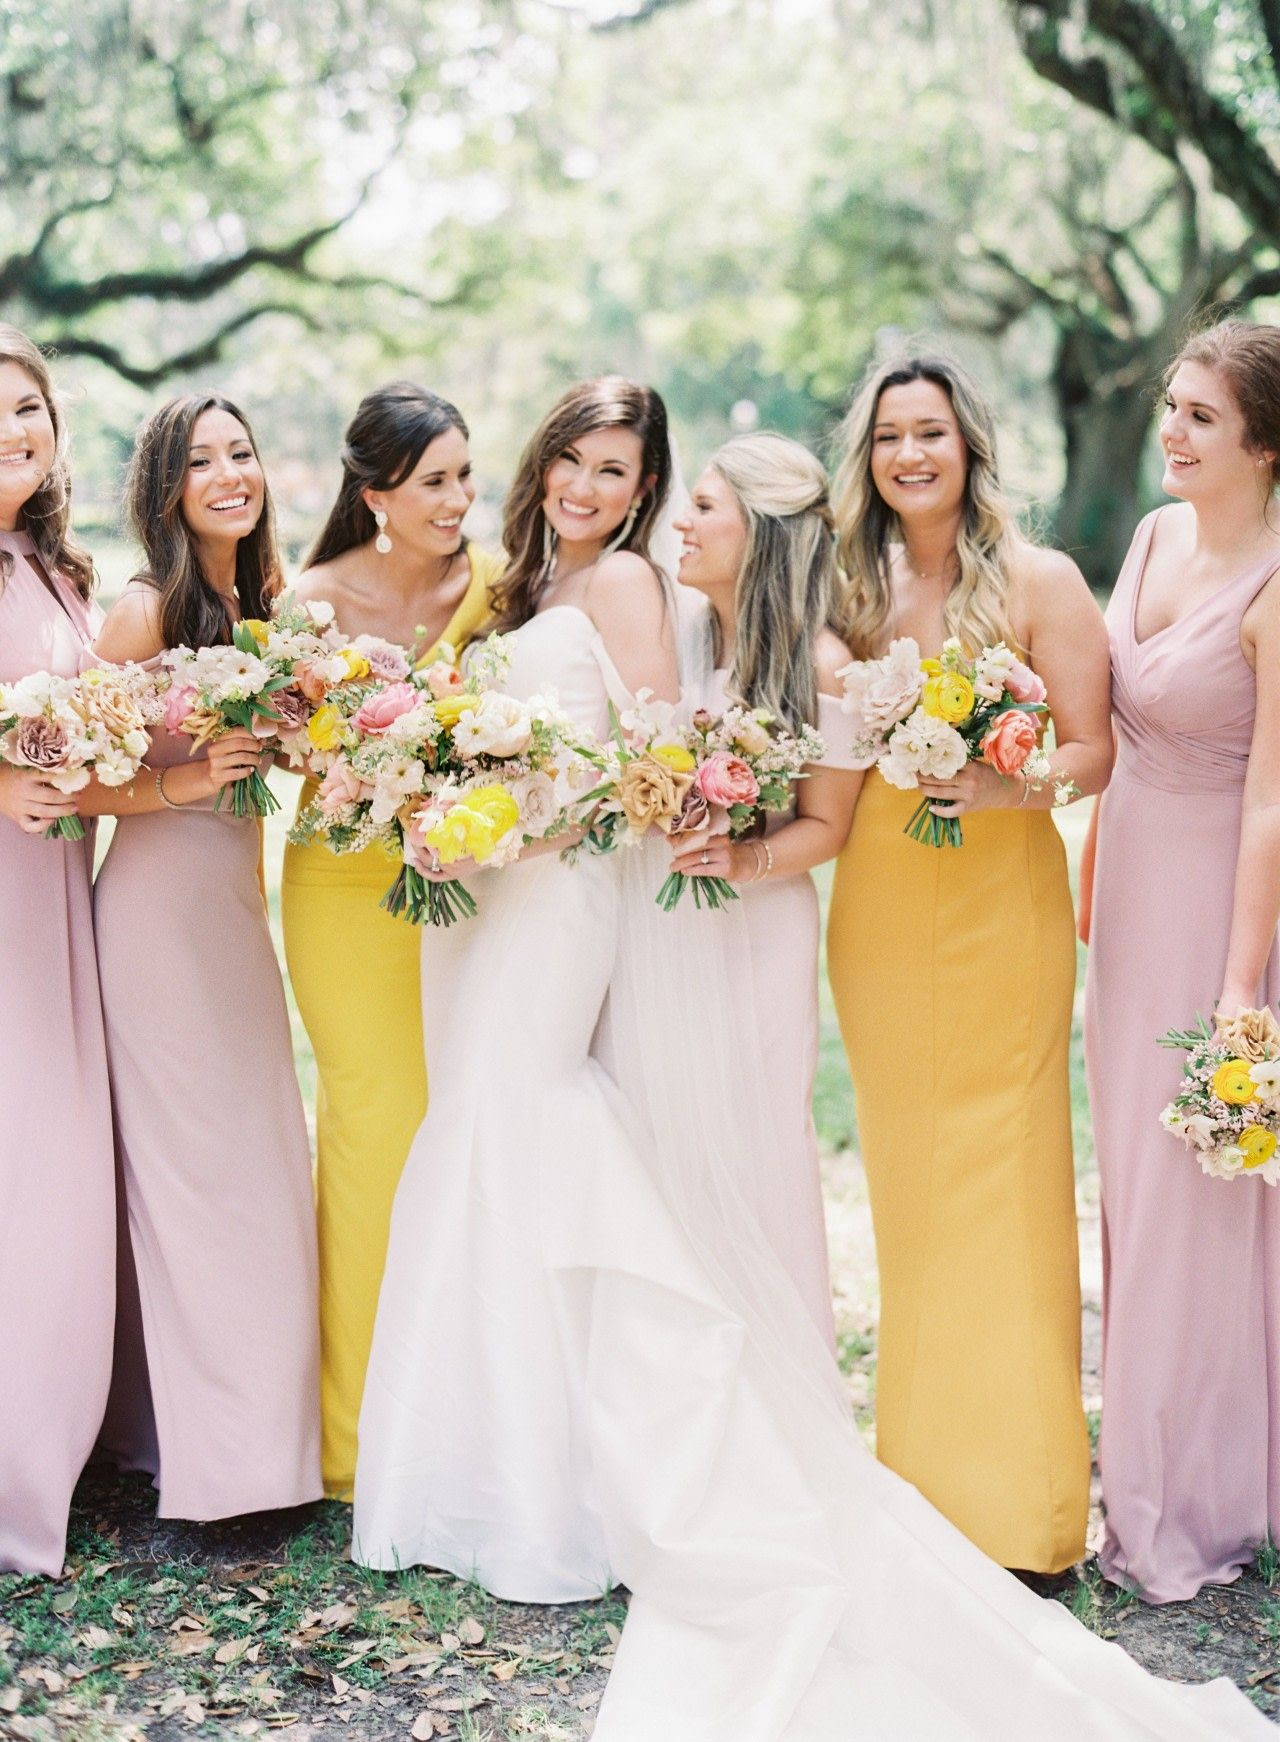 Yellow And Purple Bridesmaids Dresses And Colorful Bouquets Https Www Theknot Com Re Yellow Bridesmaid Dresses Purple Bridesmaid Dresses Purple Bridesmaids [ 1742 x 1280 Pixel ]